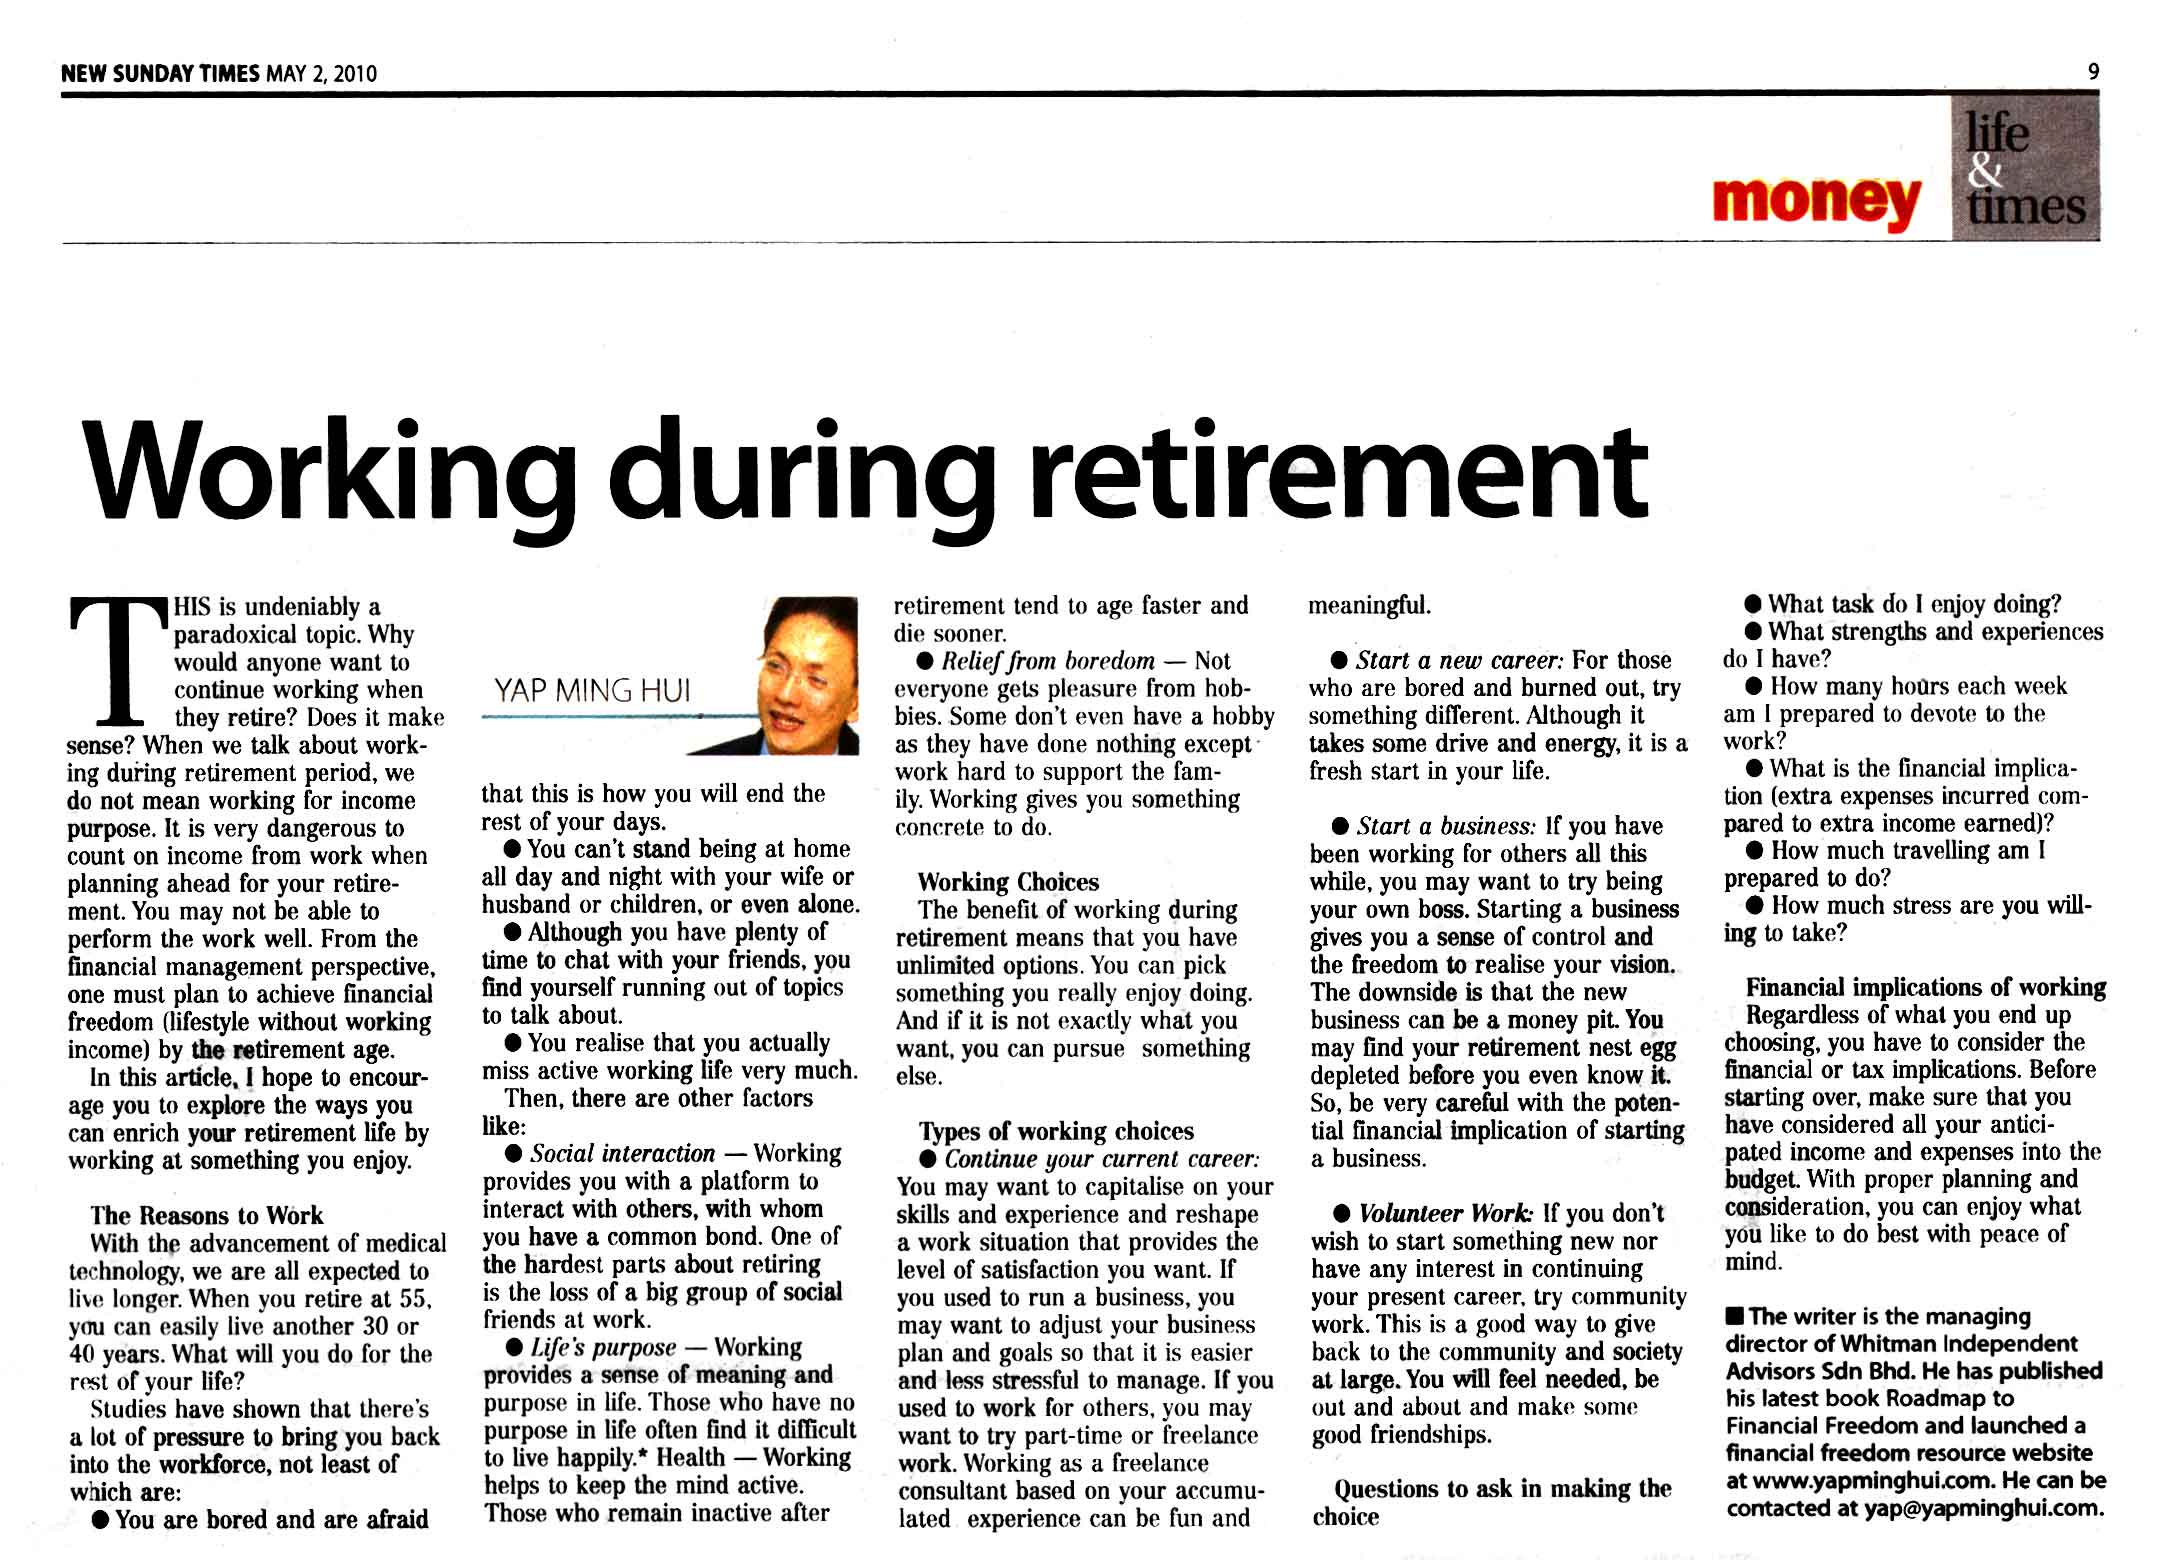 Working during retirement (New Sunday Times) - 02 May 2010